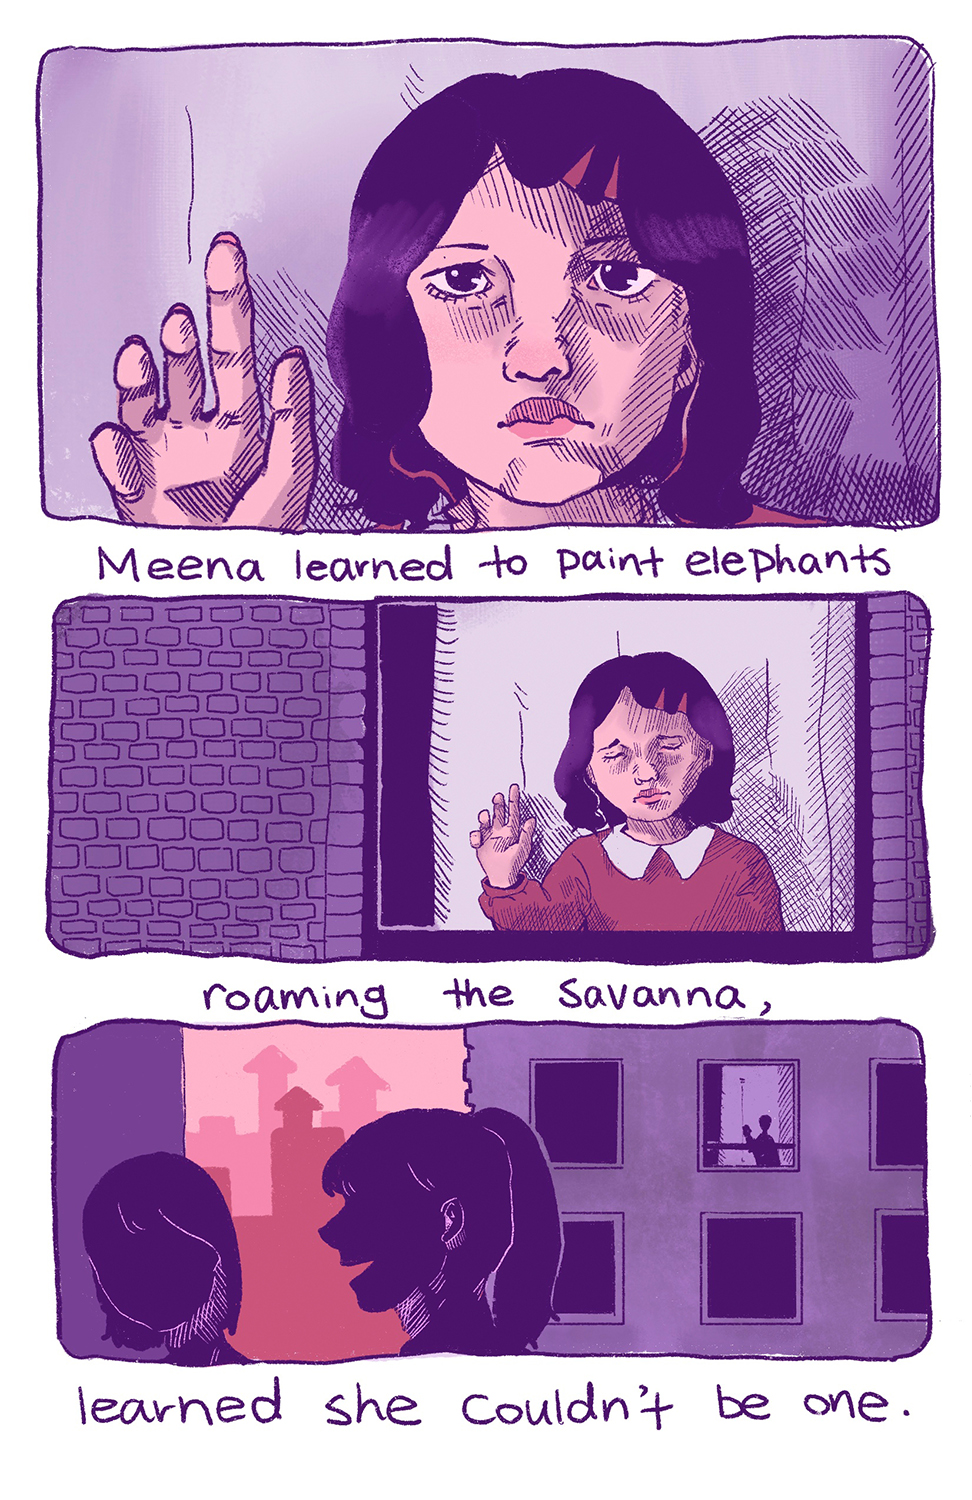 Three panel comic strip of sad girl looking at viewer with one hand pressed against the window pane and street scene below.